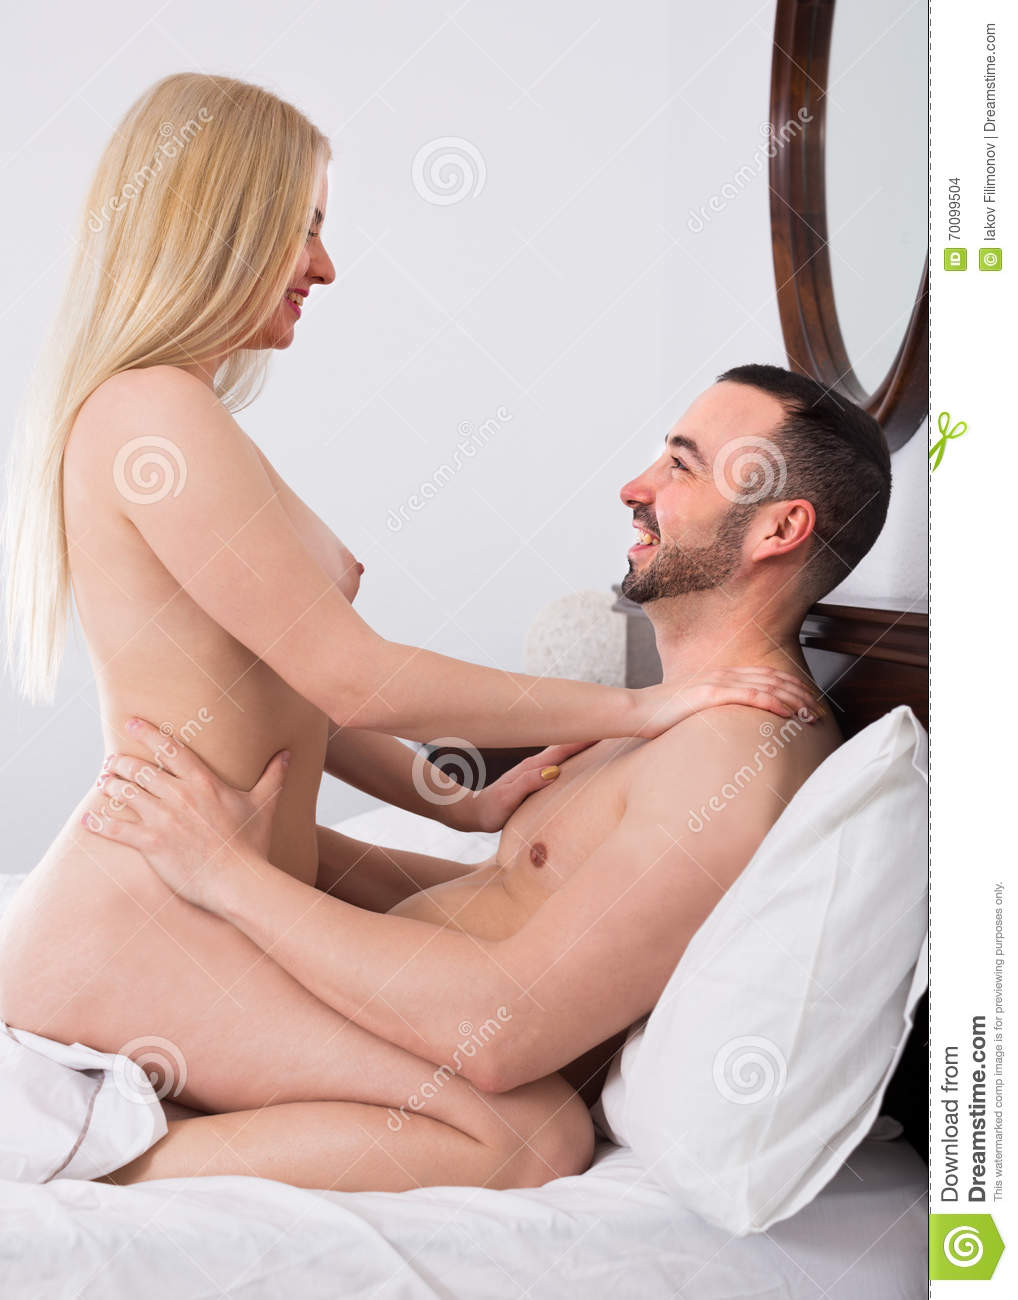 Young couple having sex on bed